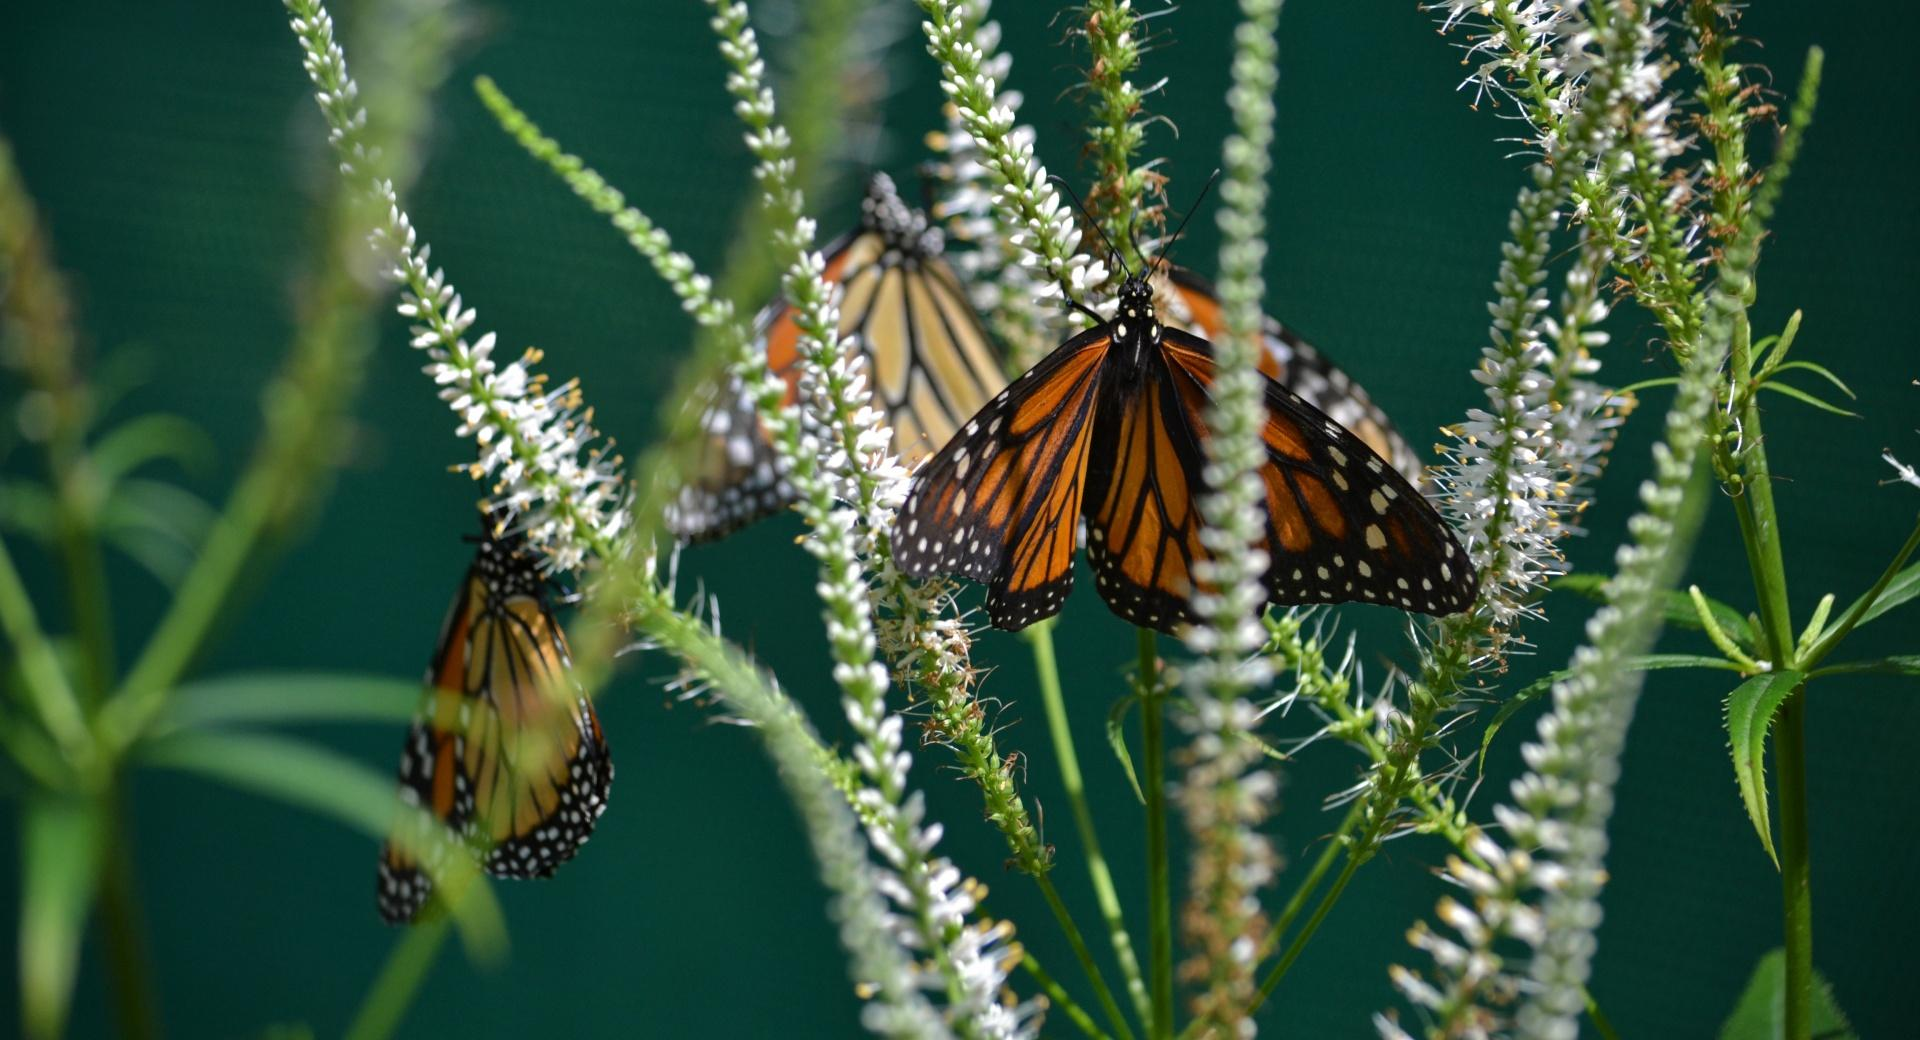 Monarch Butterfly on a Flower wallpapers HD quality